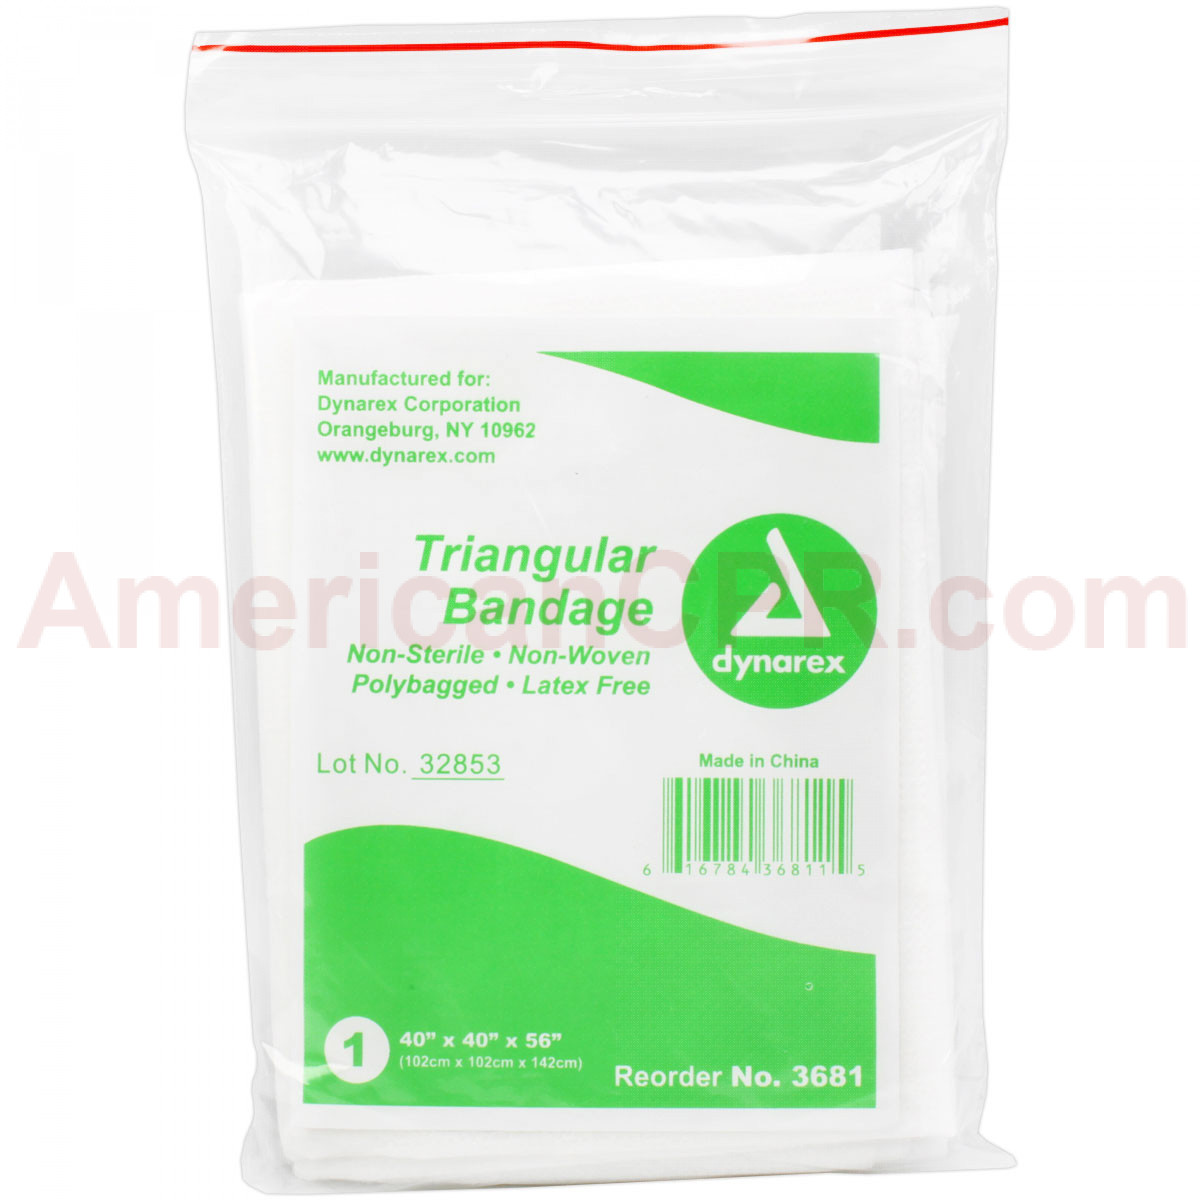 Triangular Sling/Bandage w/ 2 Safety Pins - 1 Each - Value Brand